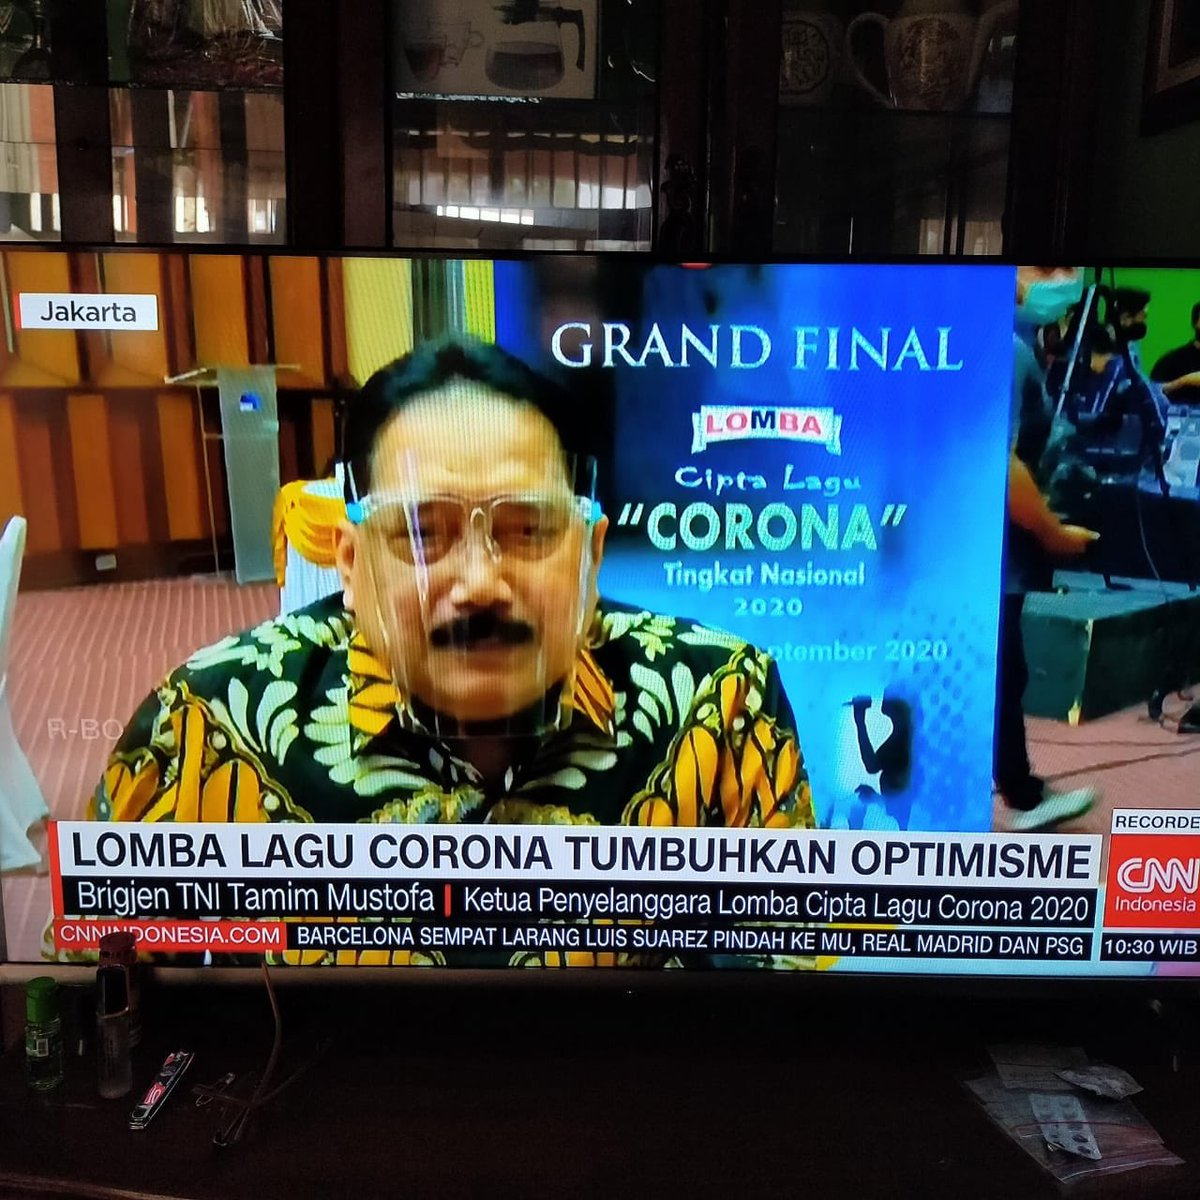 To all cynics out there that doubt our beloved leaders, Indonesia is doing great, Corona song creation contest just enters grand final.  You're all just being ridiculous!   Photo from @nazieb https://t.co/Gy72kxUV2B